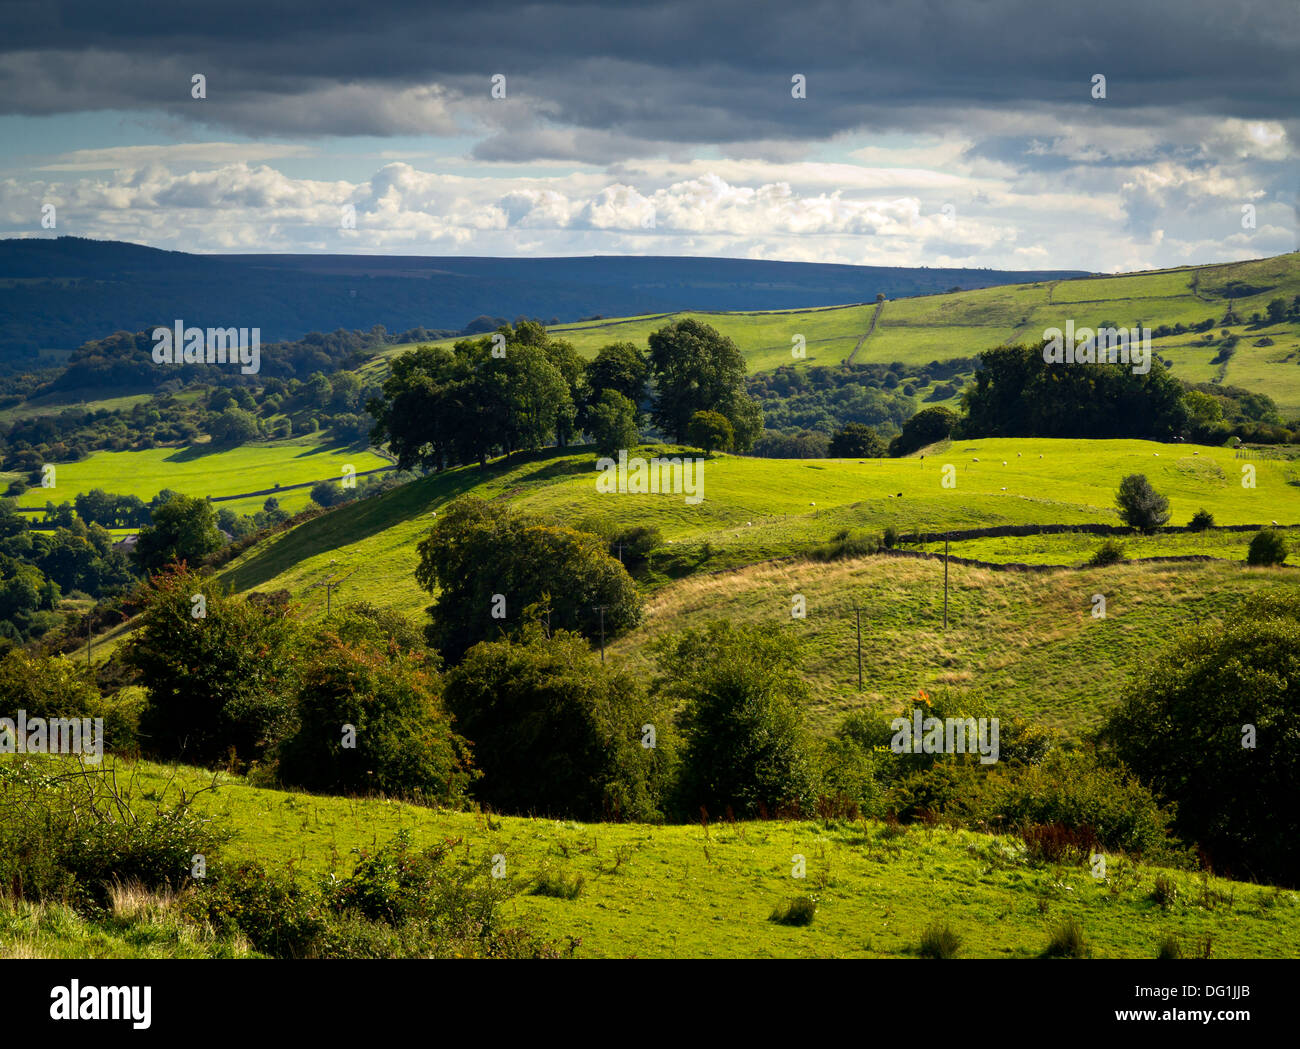 View across countryside near Eyam village in the Peak District National Park Derbyshire England UK with stormy sky above - Stock Image